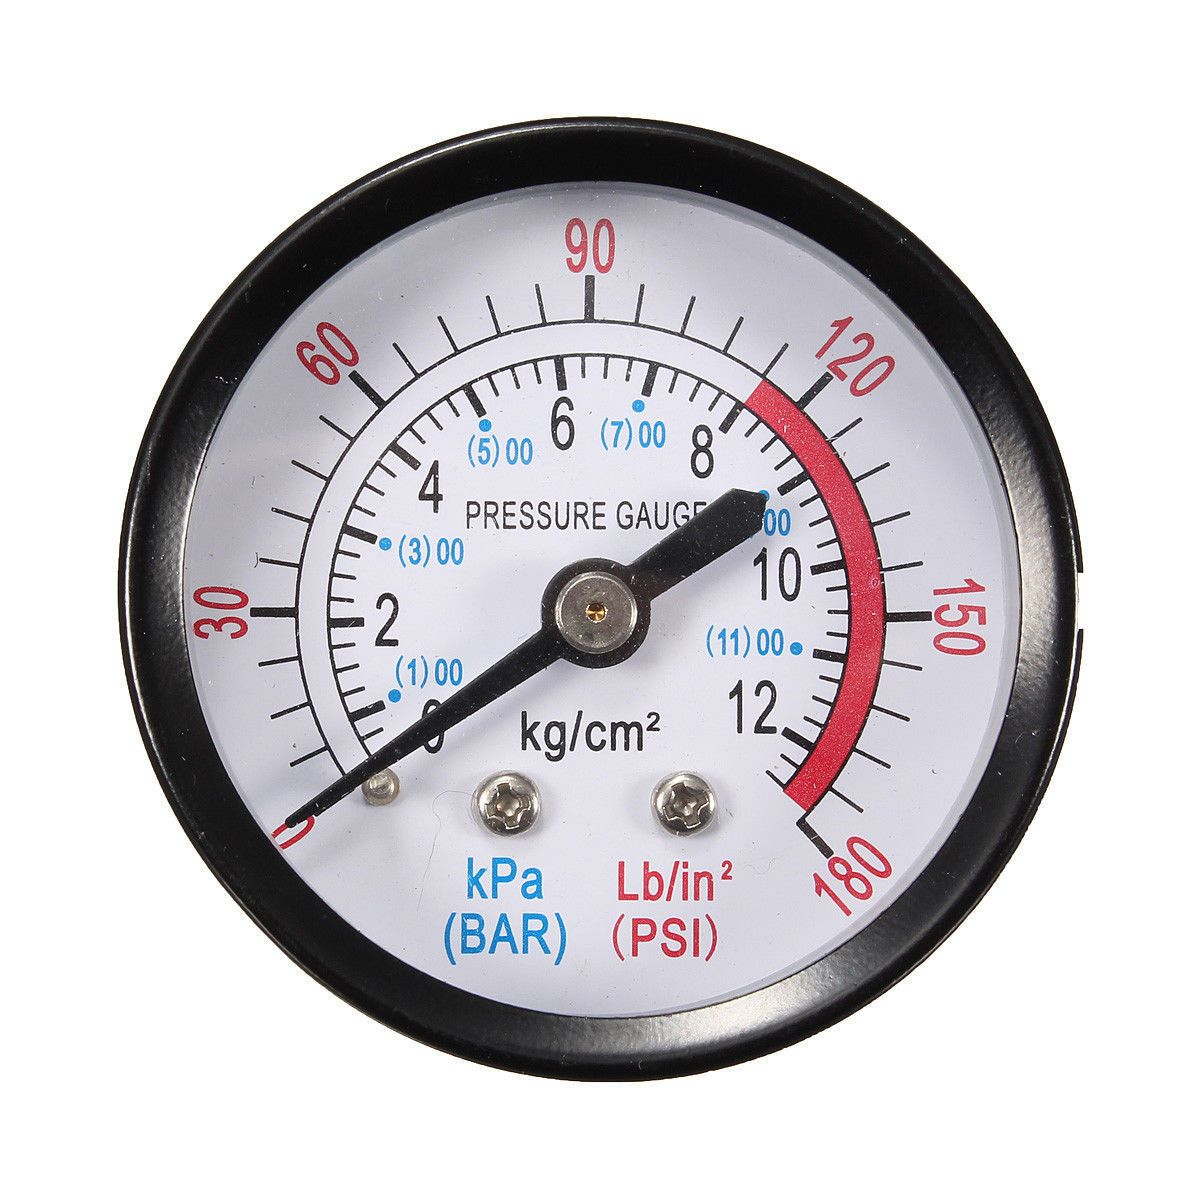 1 4 Bsp Thread 0 180psi 0 12bar Air Pressure Gauge For Air Compressor Iron Air Pressure Gauge Pressure Gauge Gauges